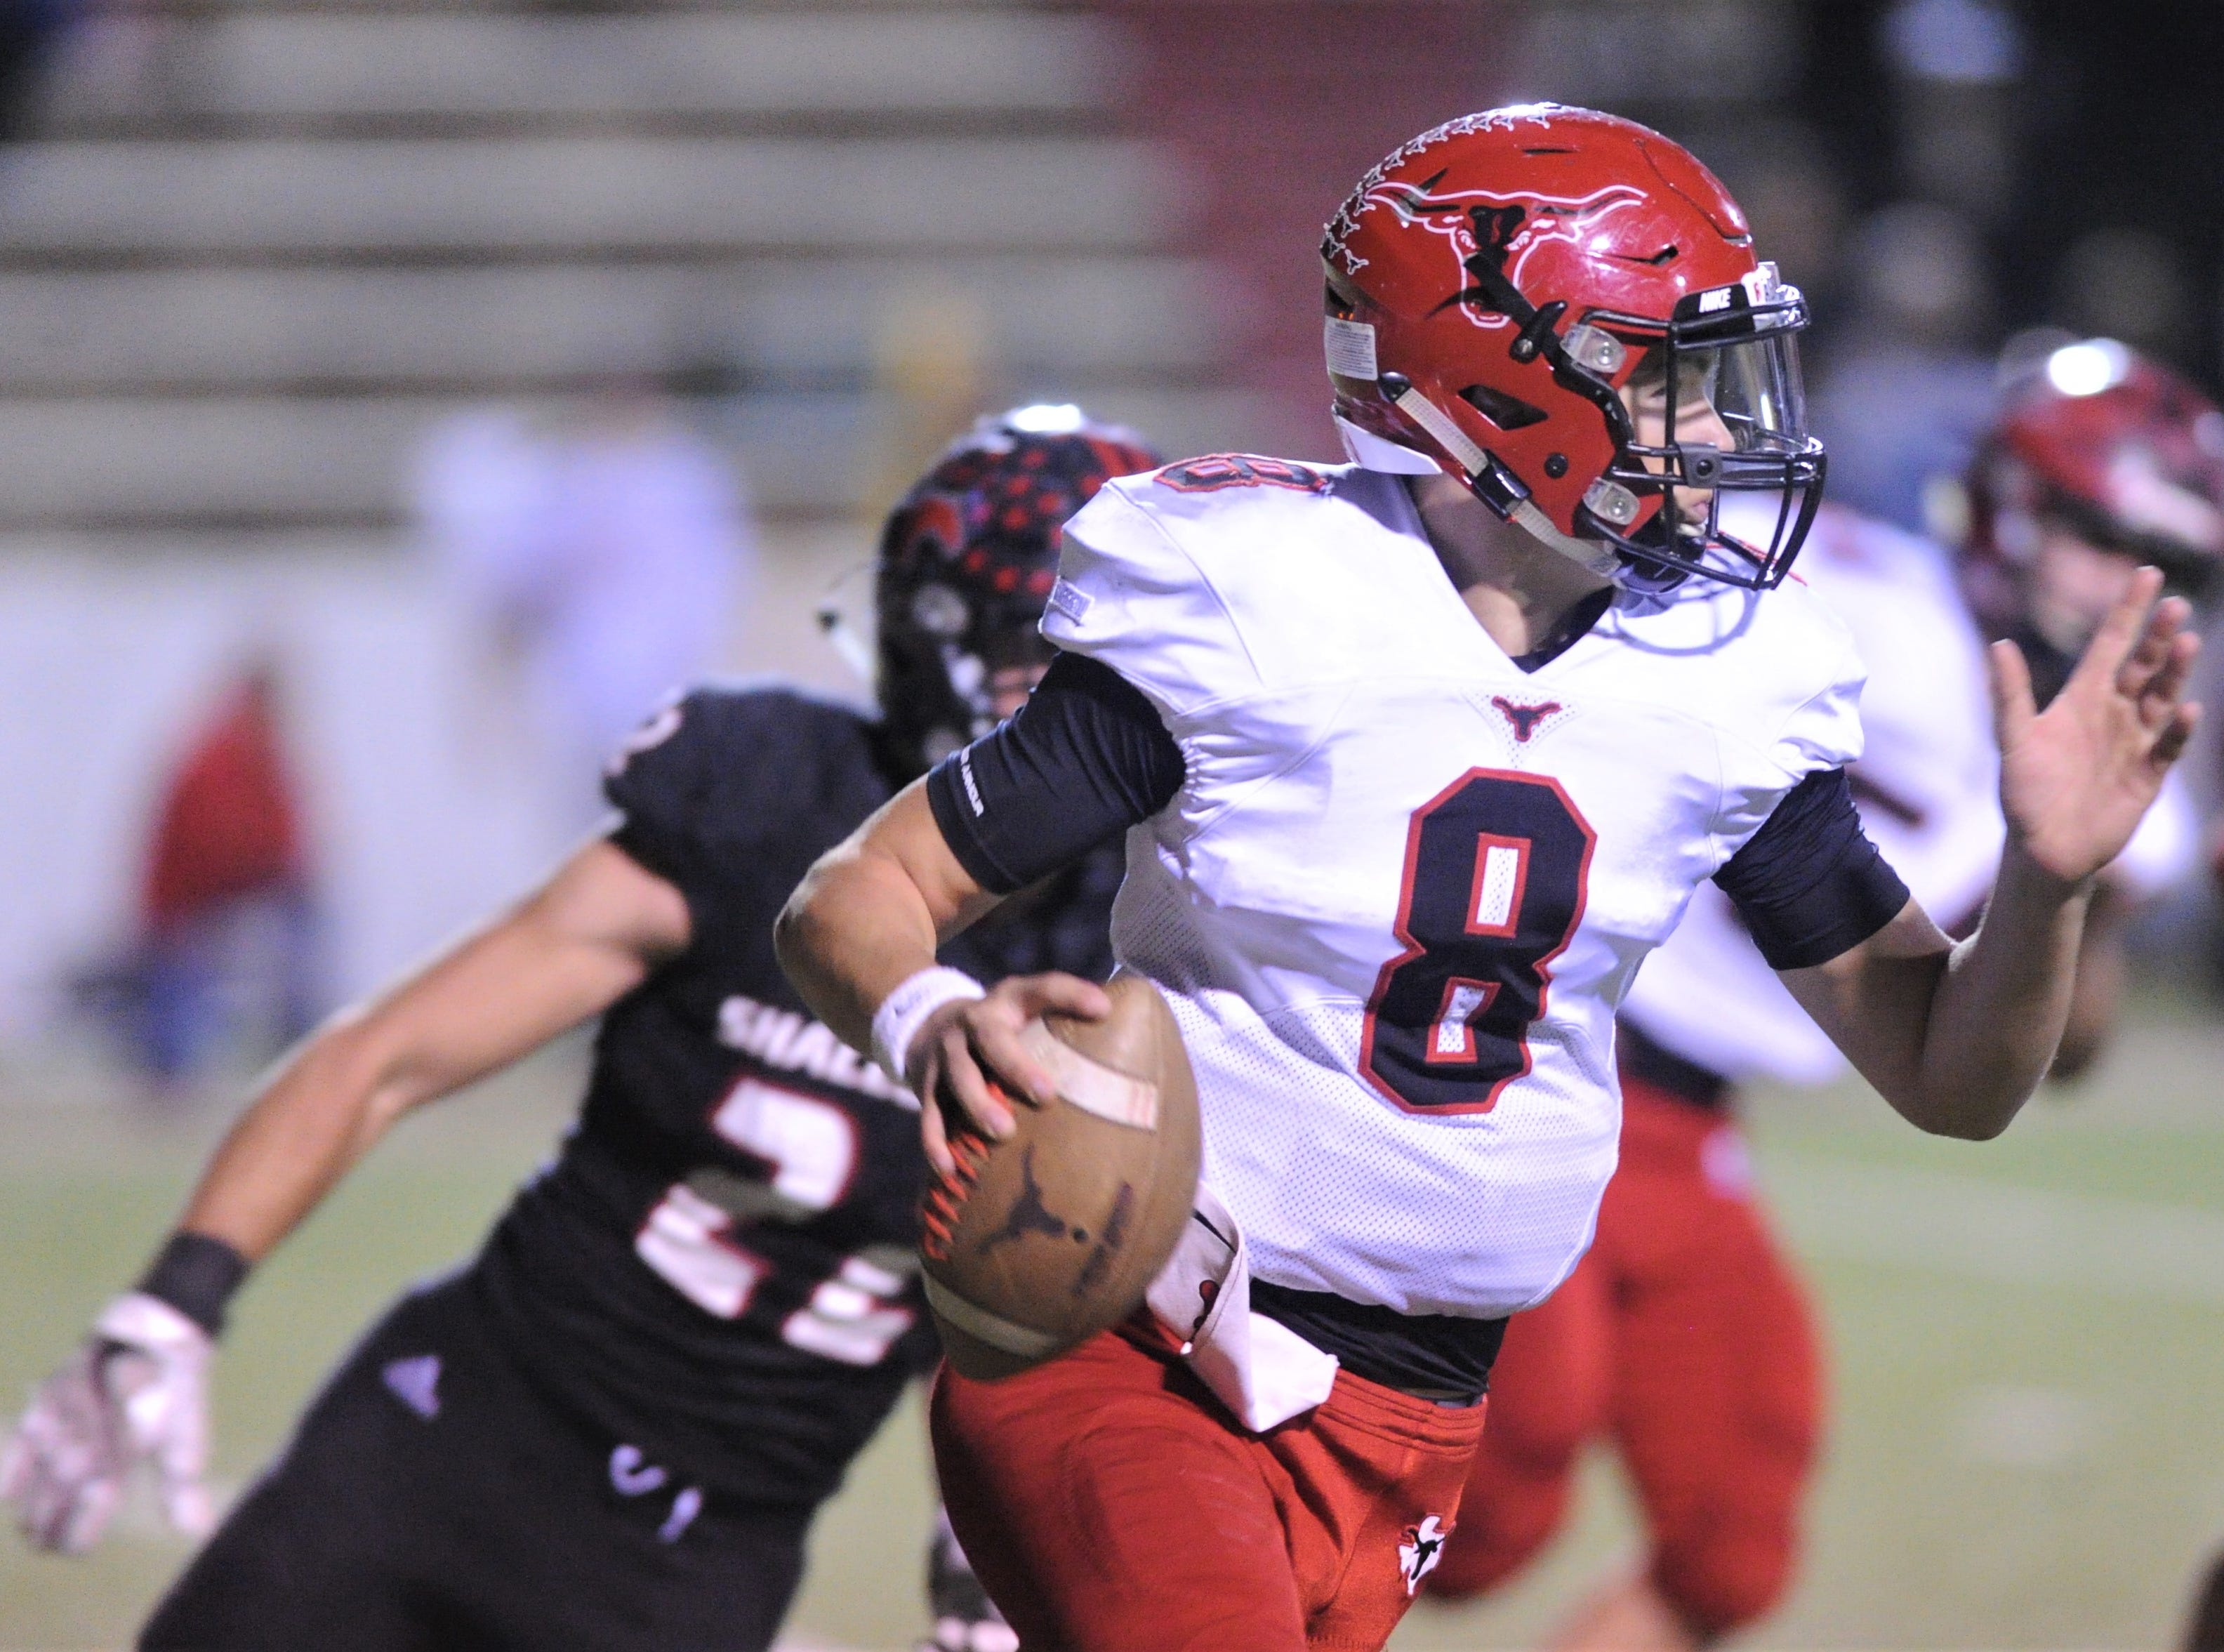 Eastland quarterback Behren Morton (8) scrambles while a Shallowater defender chases him. Shallowater beat the Mavericks 56-21 in the Region I-3A Division I semifinal playoff game Thursday, Nov. 29, 2018, at the Mustang Bowl in Sweetwater.